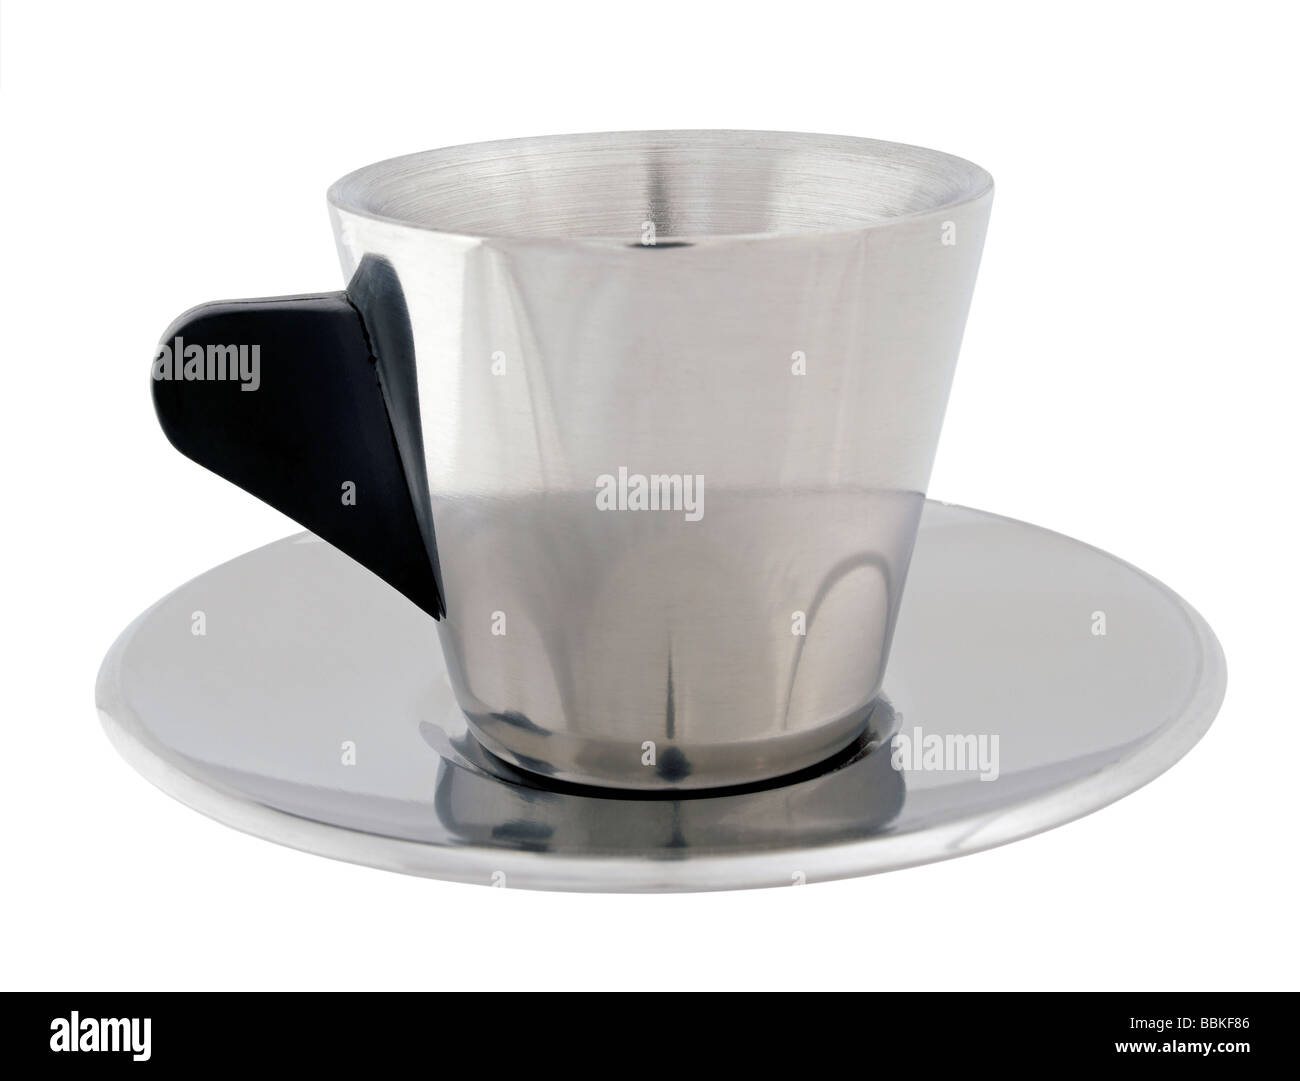 Chrome espresso cup - Stock Image